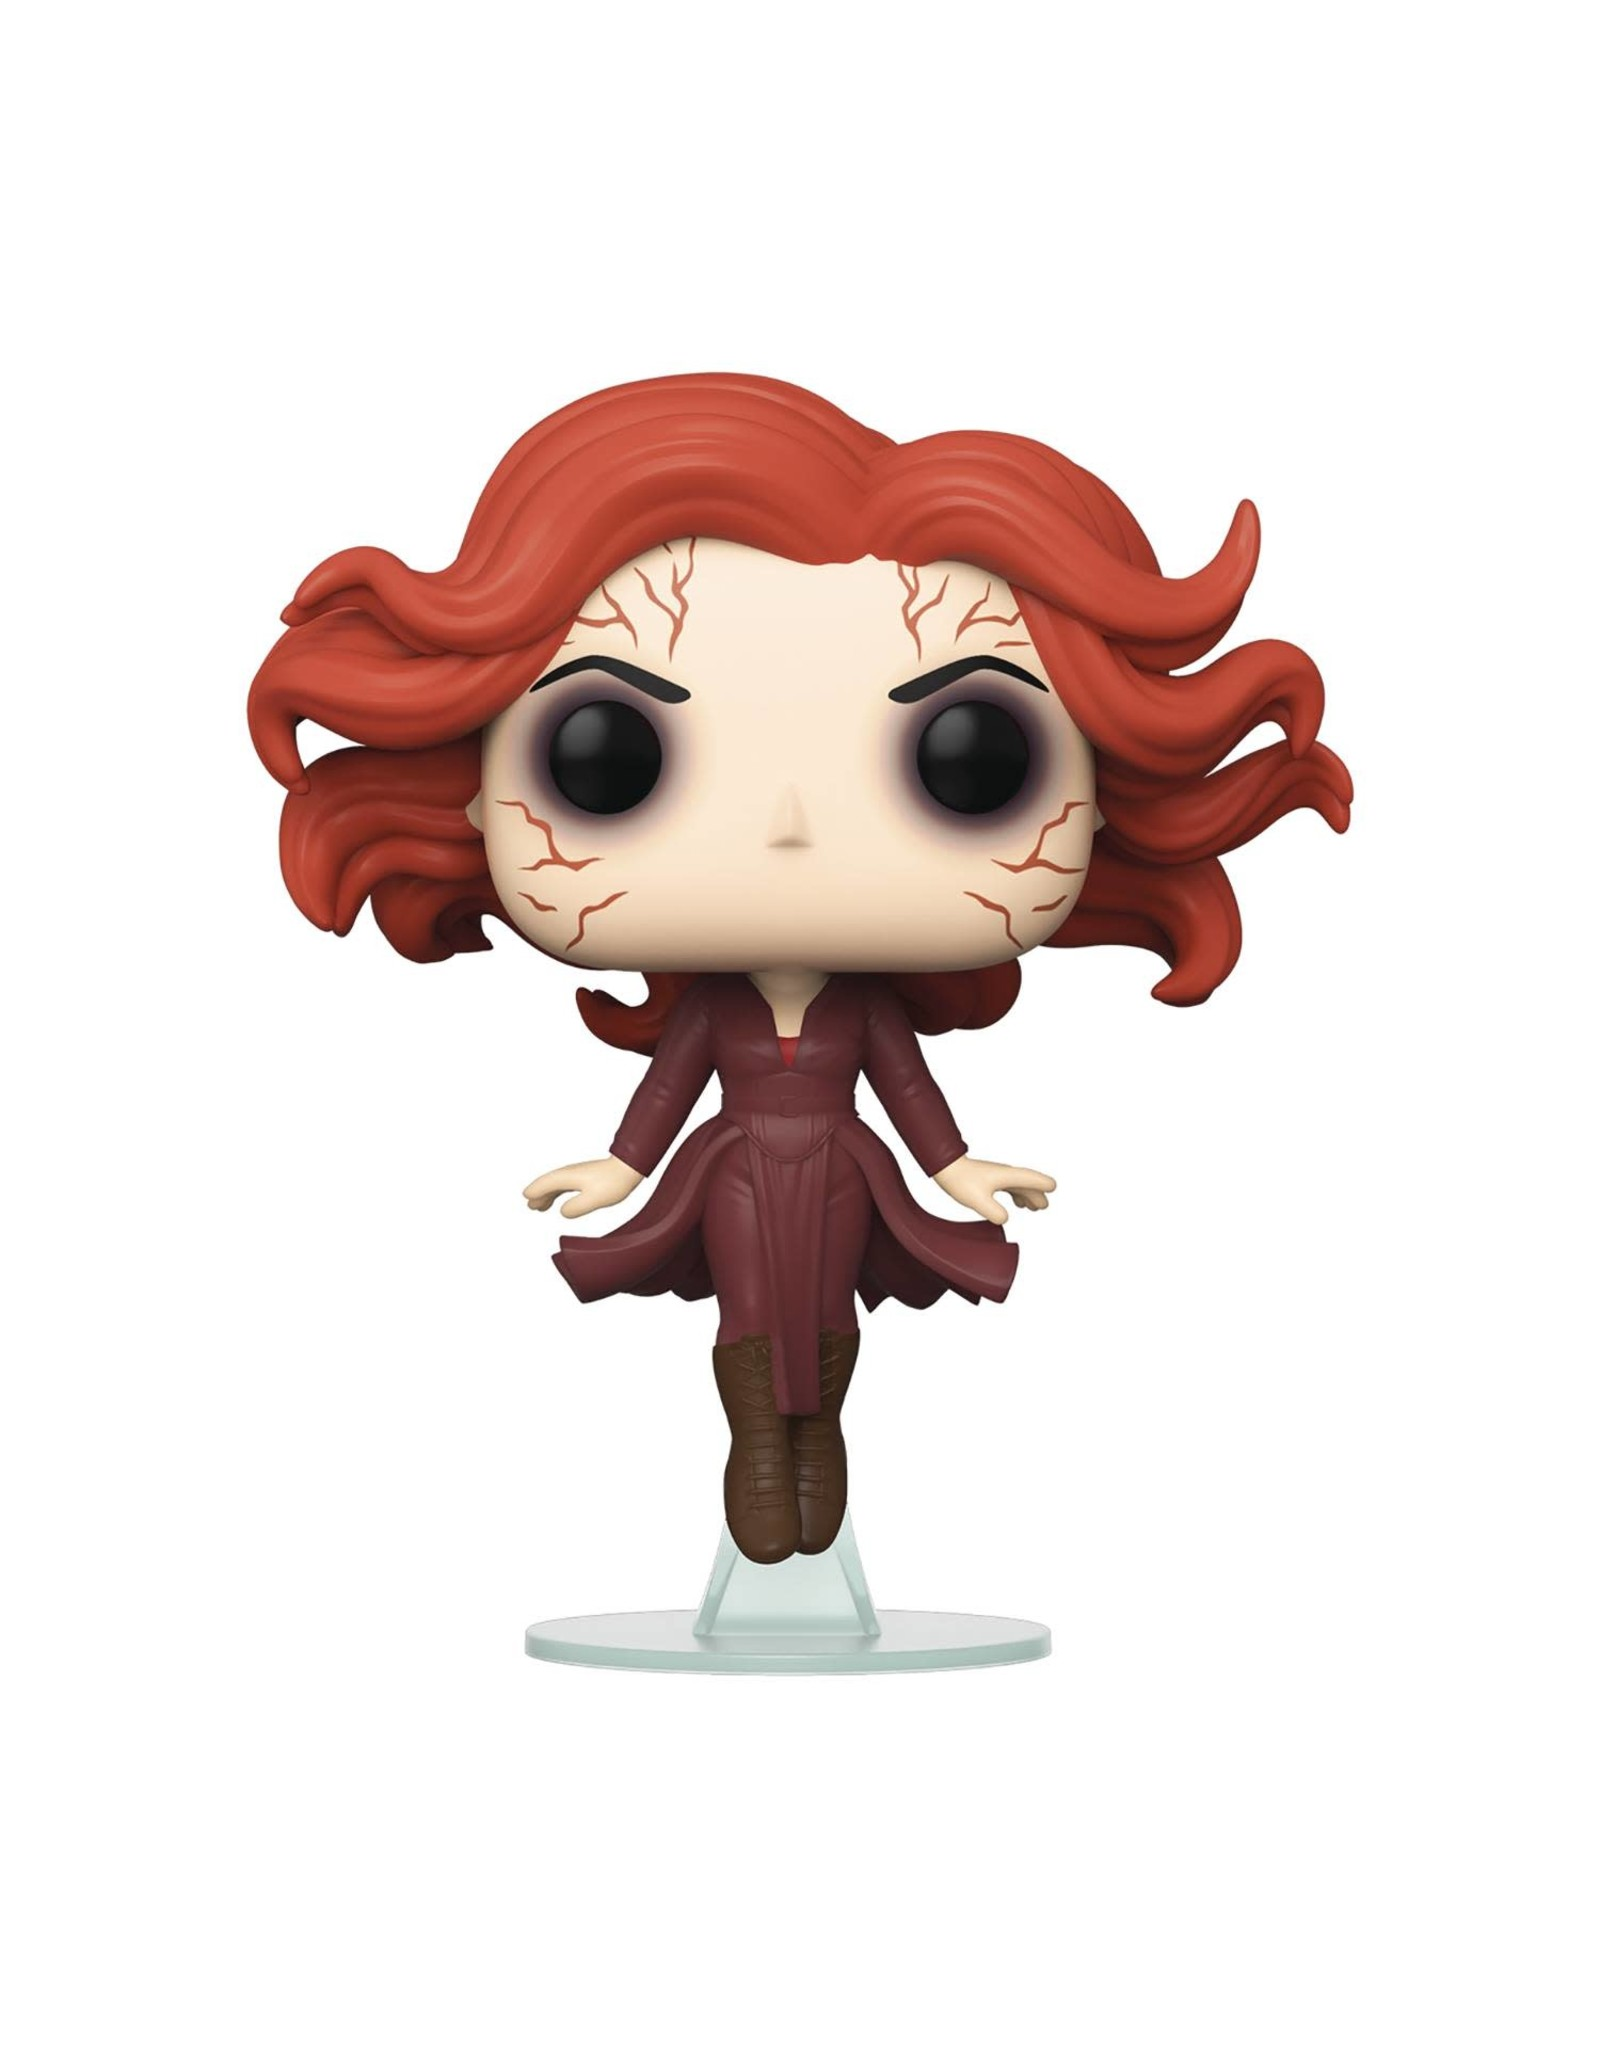 Funko POP MARVEL X-MEN 20TH JEAN GREY VIN FIGURE (C: 1-1-2)